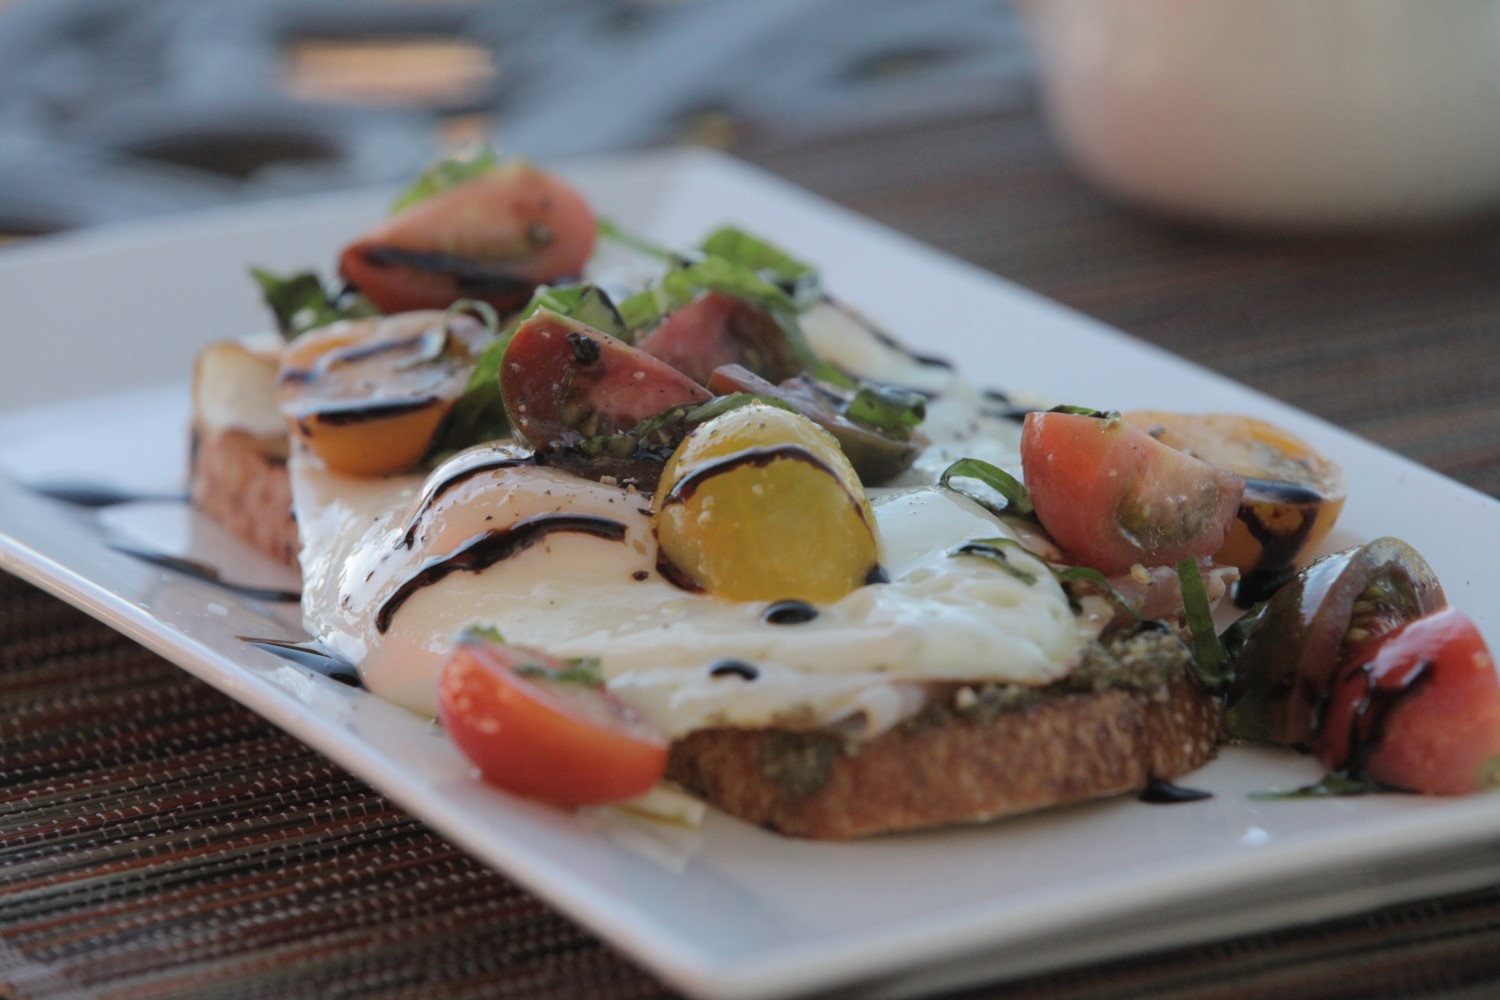 Breakfast Bruschetta with Balsamic Reduction